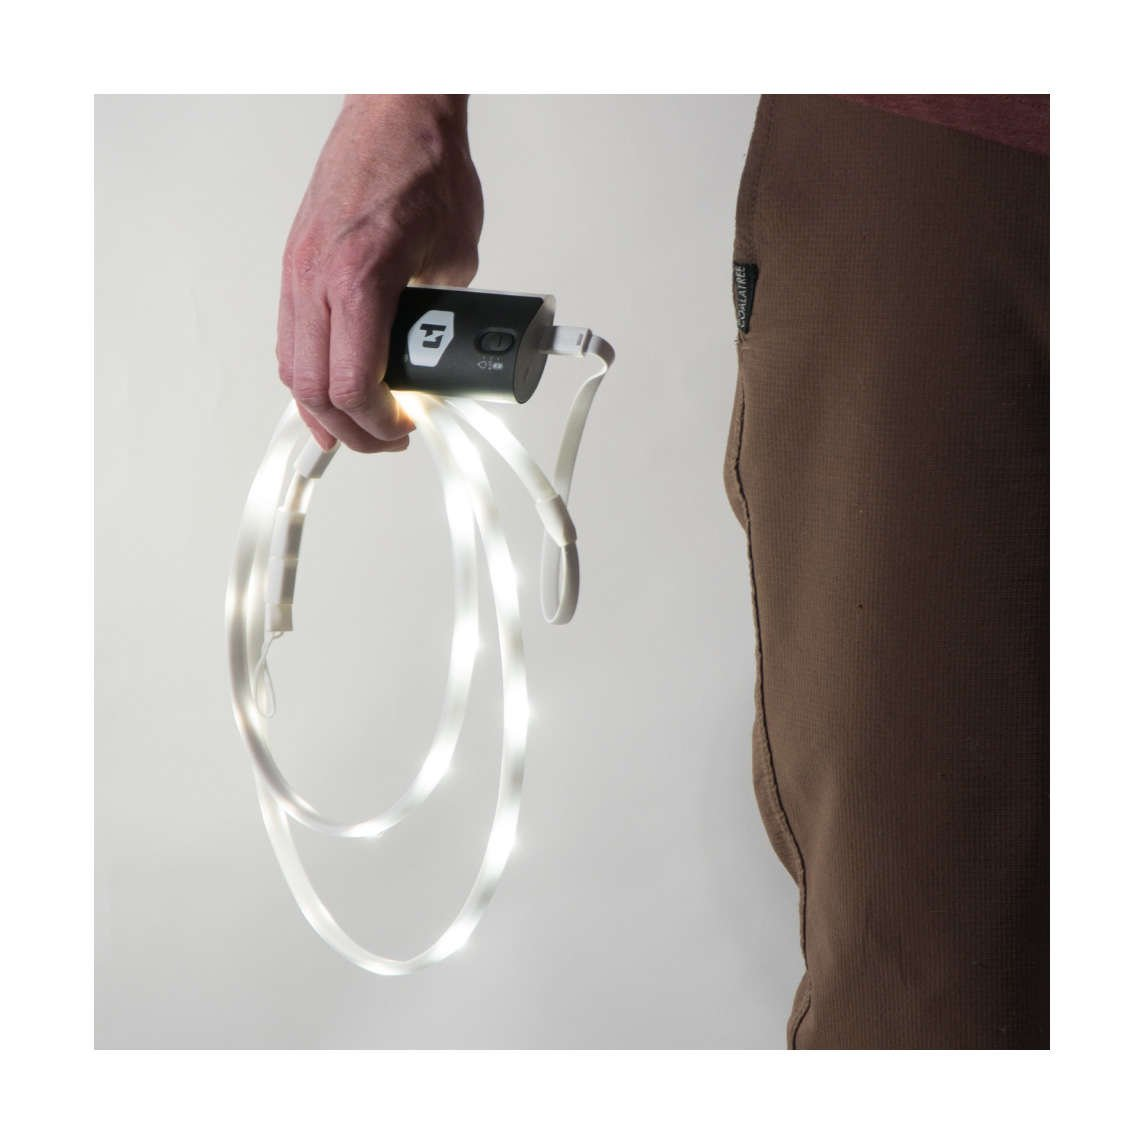 Luminoodle USB light rope with Lithium 4400 Battery pack